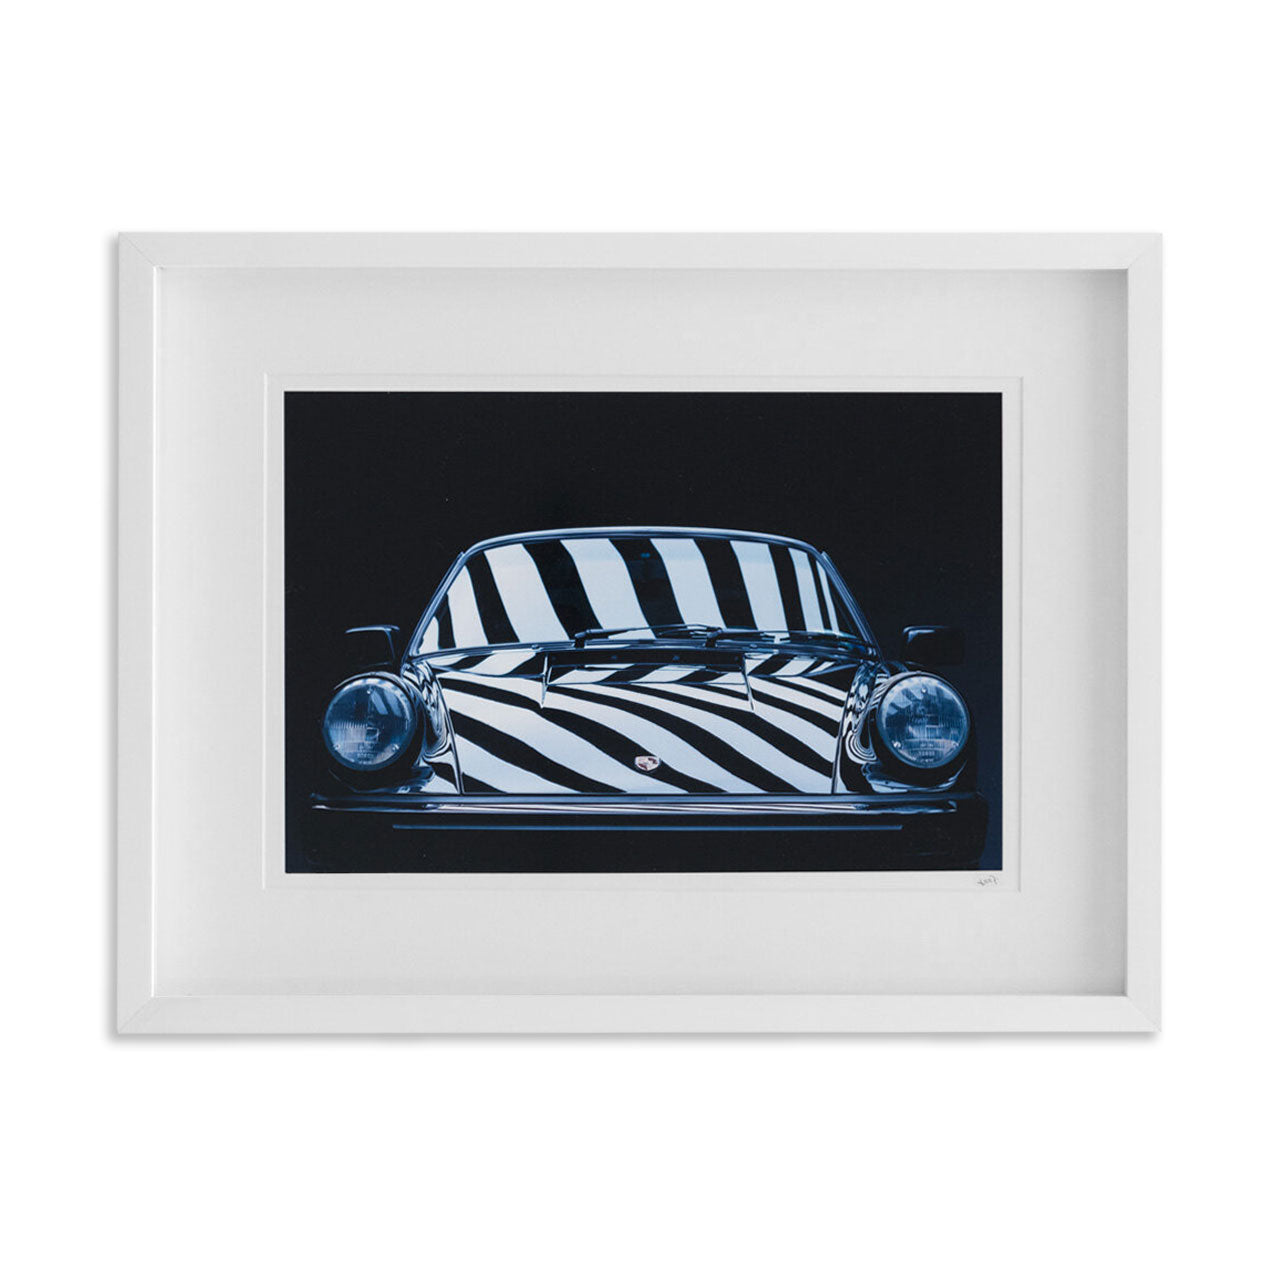 Porsche 911 G Body Framed Print